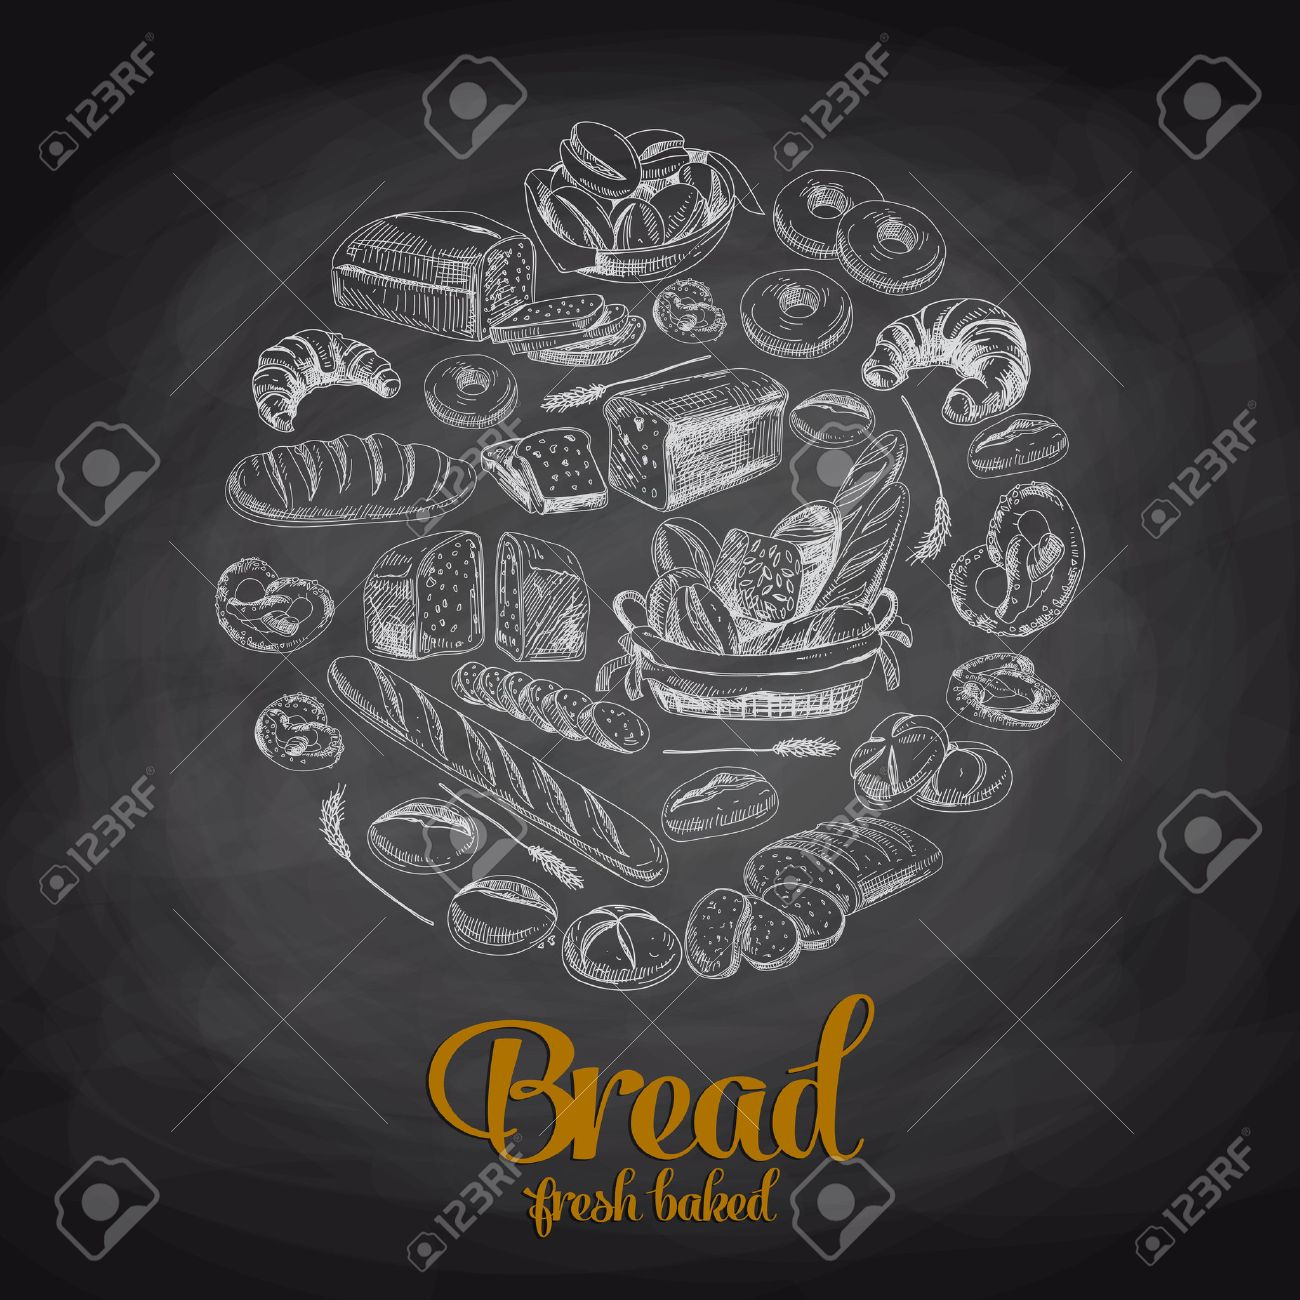 Hand drawn vector illustration with bread. Sketch. Chalkboard - 43333442